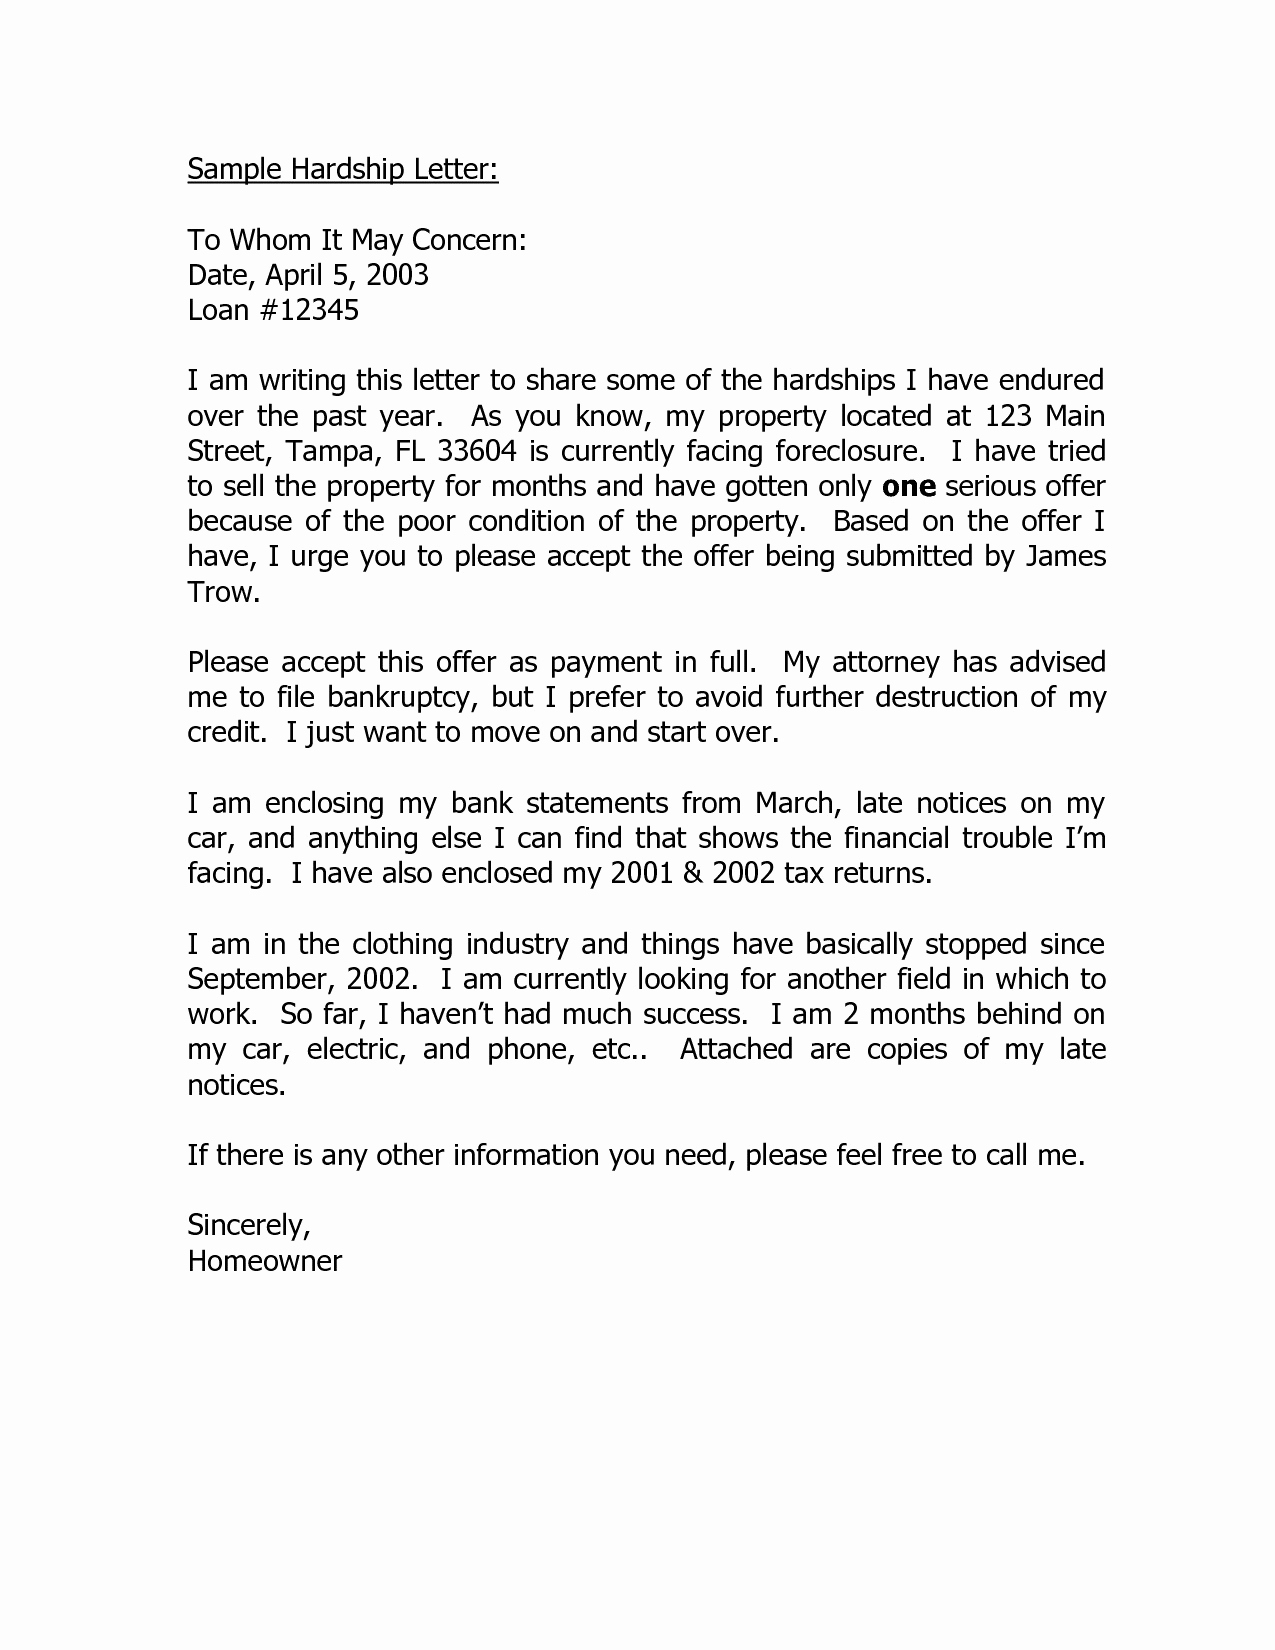 auto loan payoff letter template Collection-Loan Payoff Letter Template Best Pixyte Co Page 41 86 Letter Sample formats and 11-s